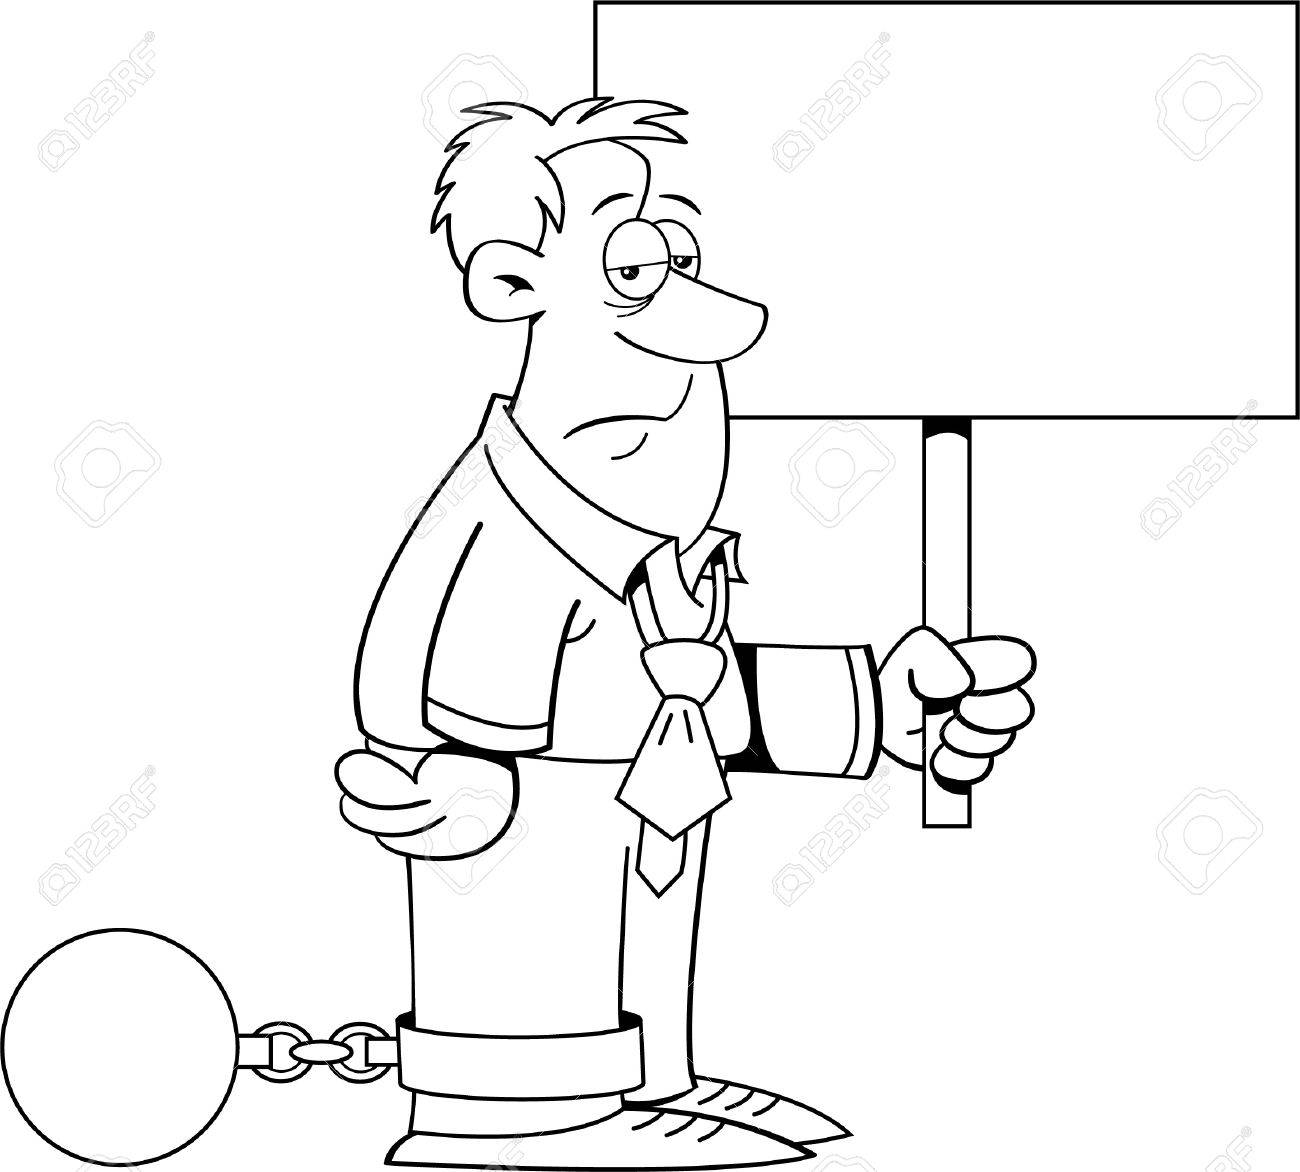 Black and white illustration of a man wearing a ball and chain and holding a sign Stock Vector - 15984205